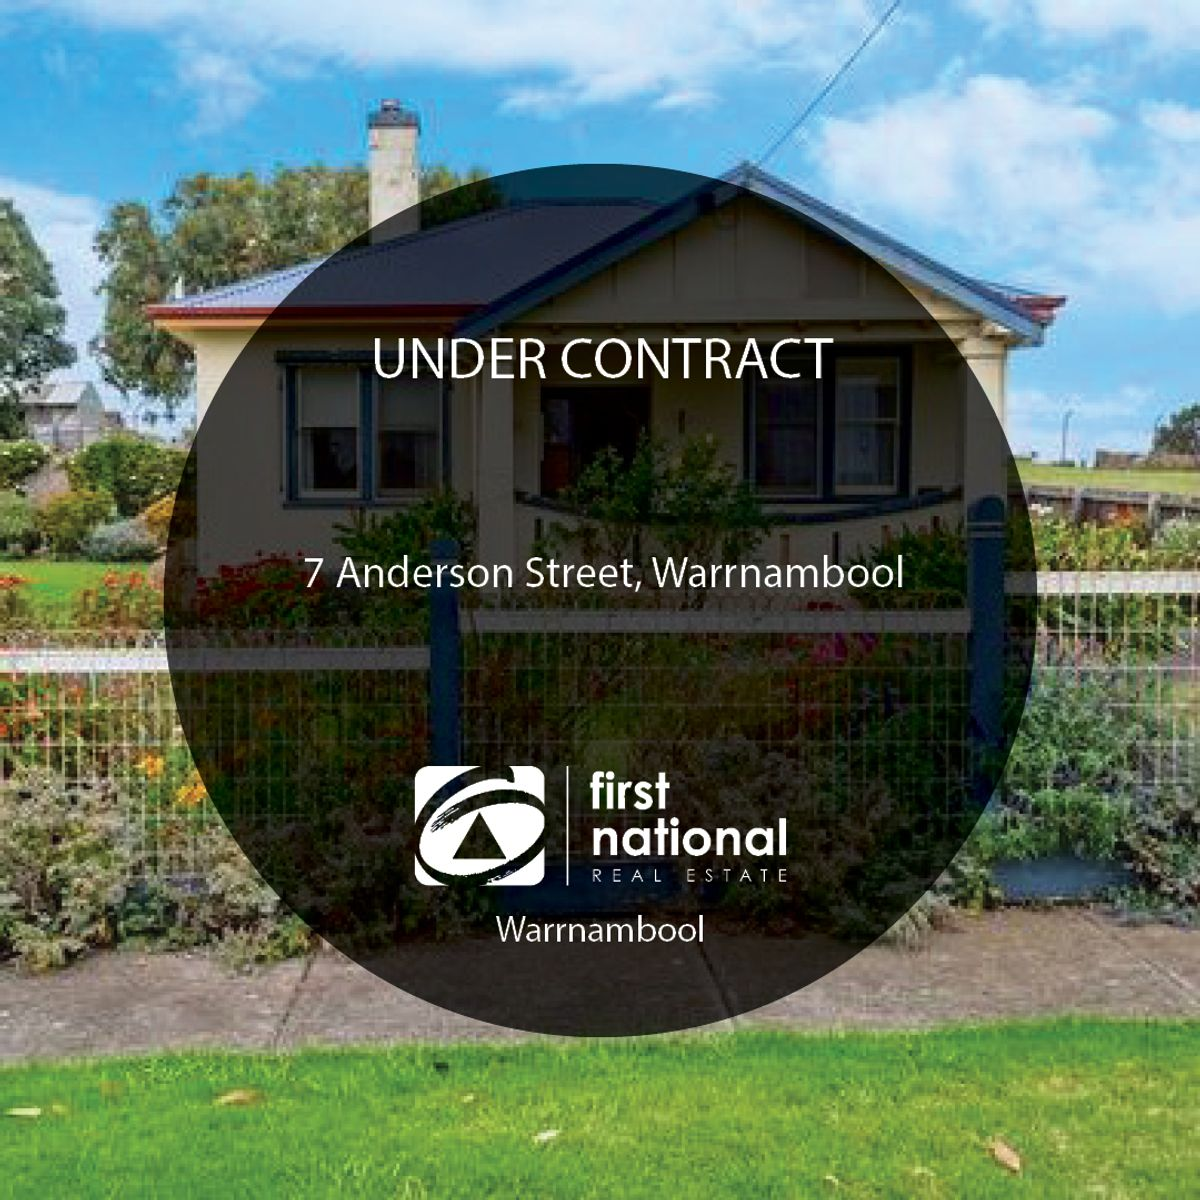 7 Anderson Street, Warrnambool, VIC 3280